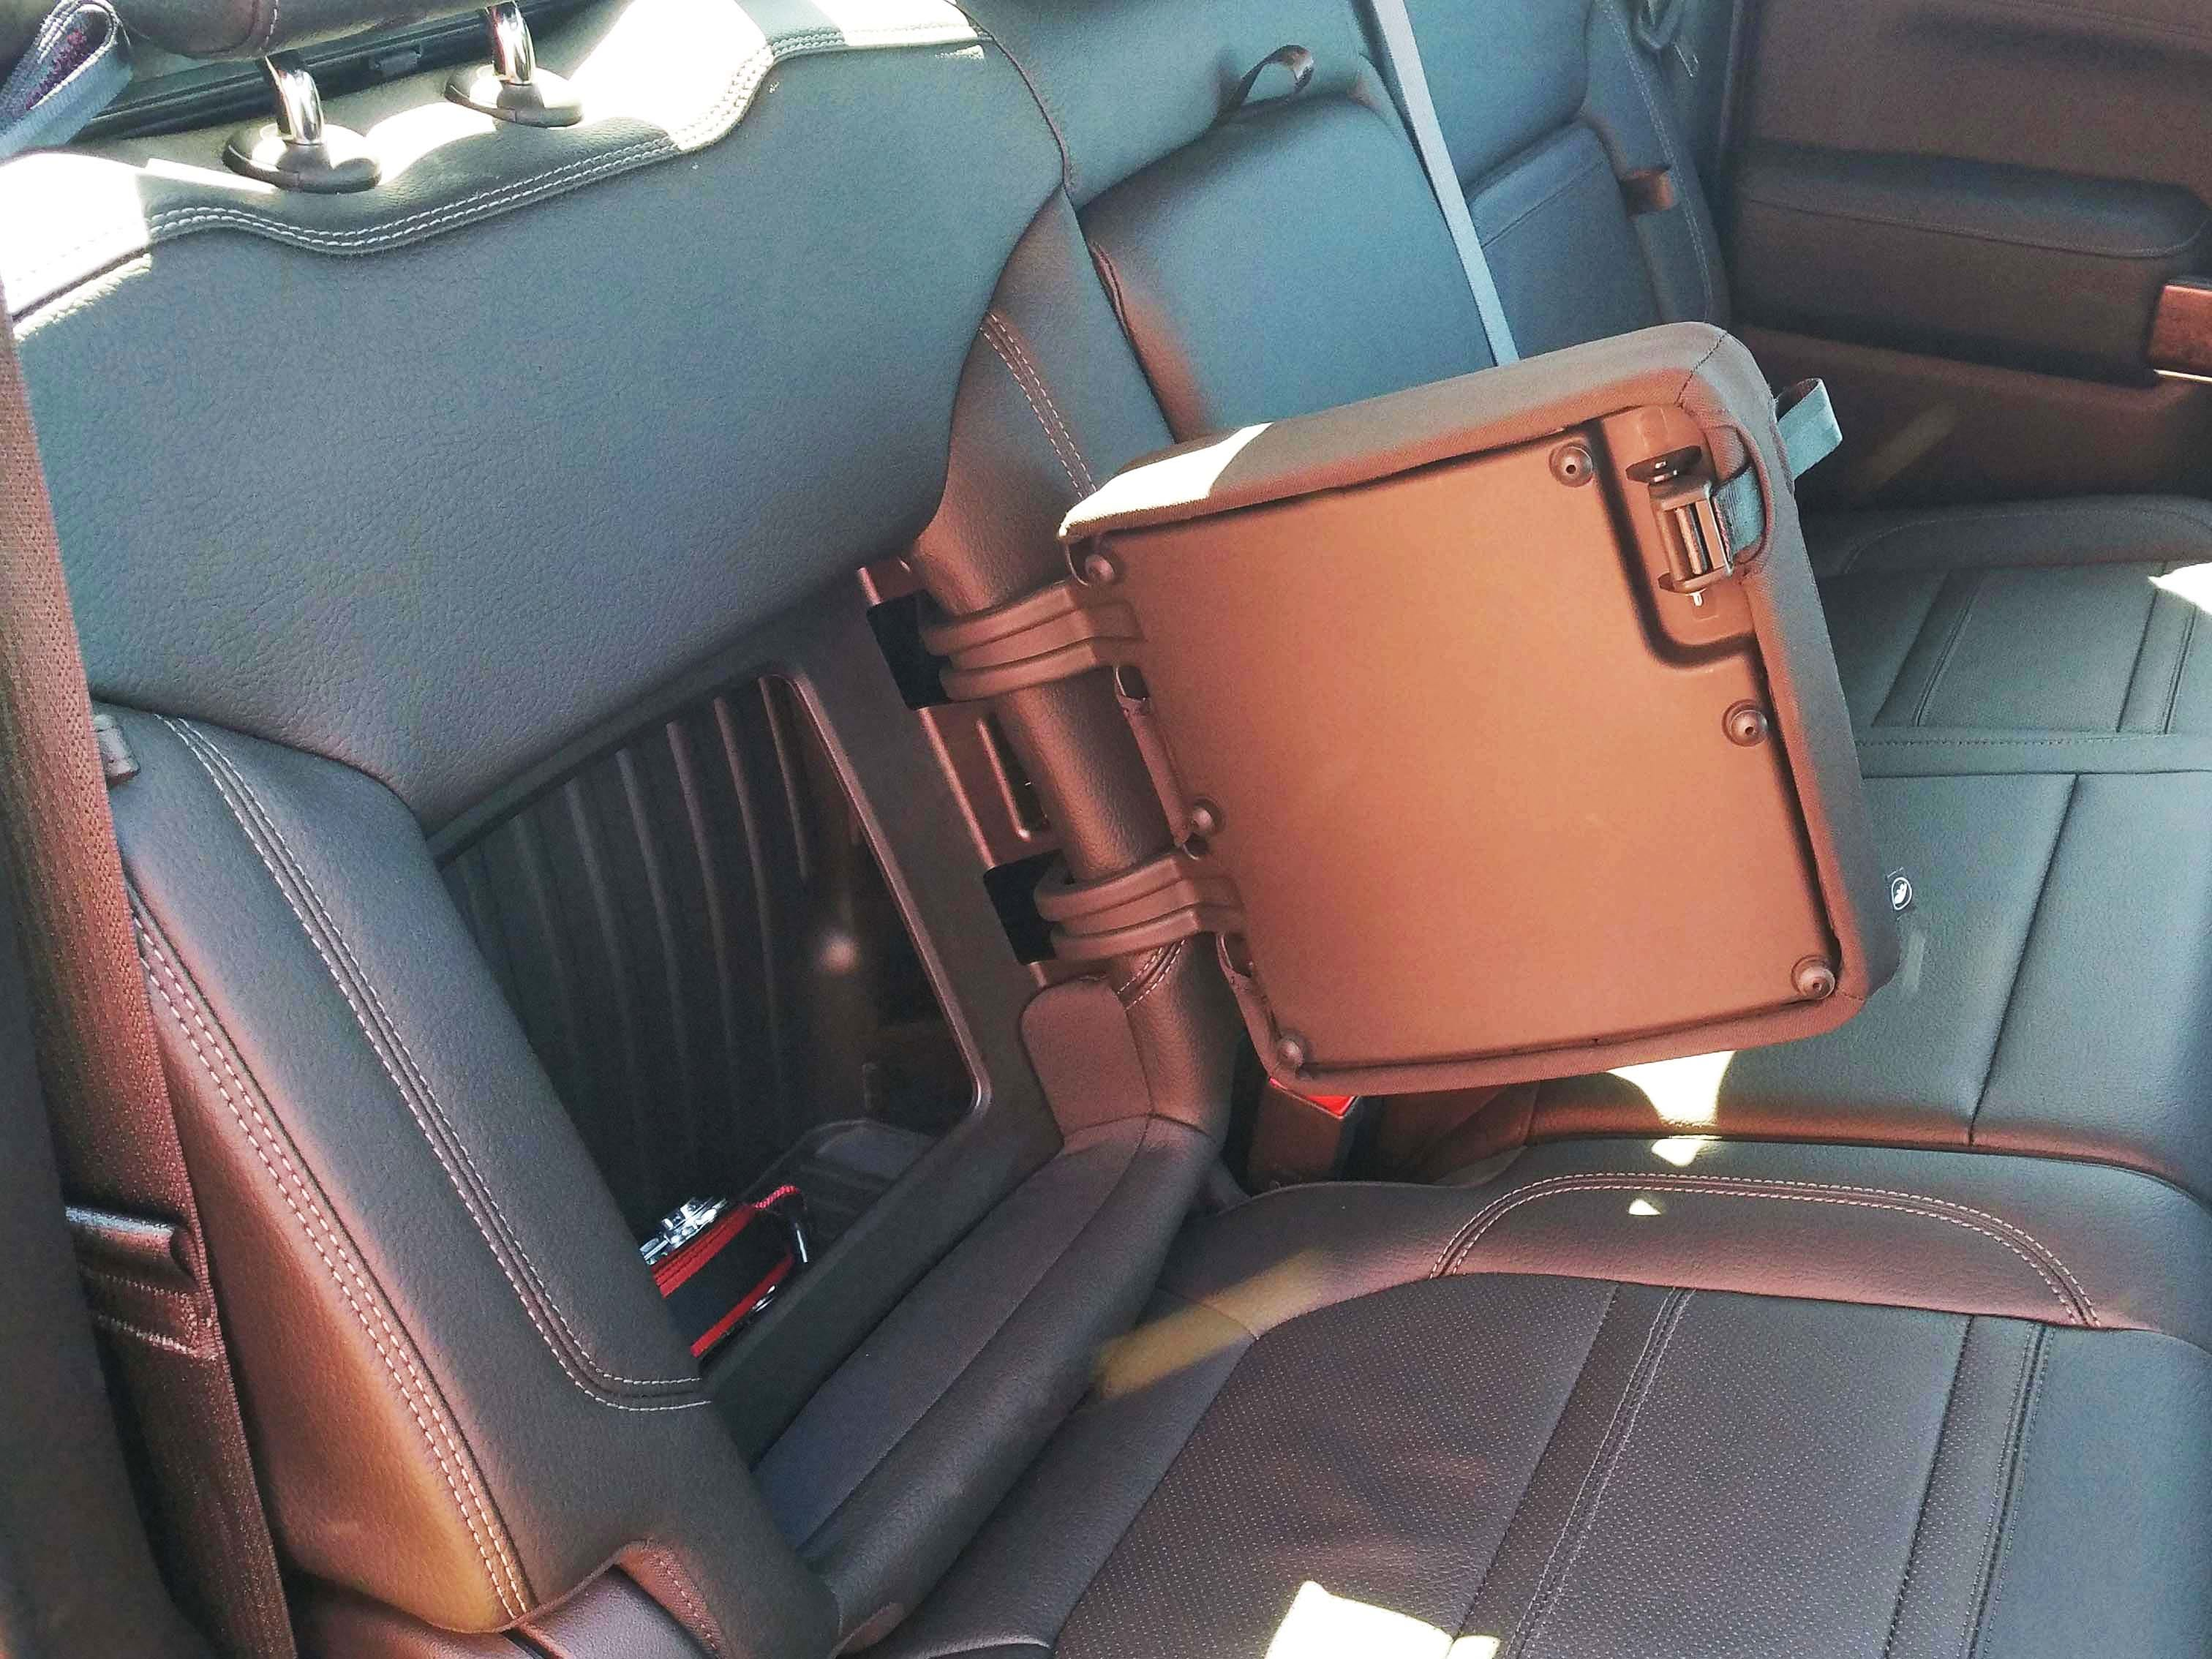 Like sibling Chevy Silverado, the 2019 GMC Sierra comes equipped with clever, rear seat-back storage. It will fit a computer tablet and other small items.